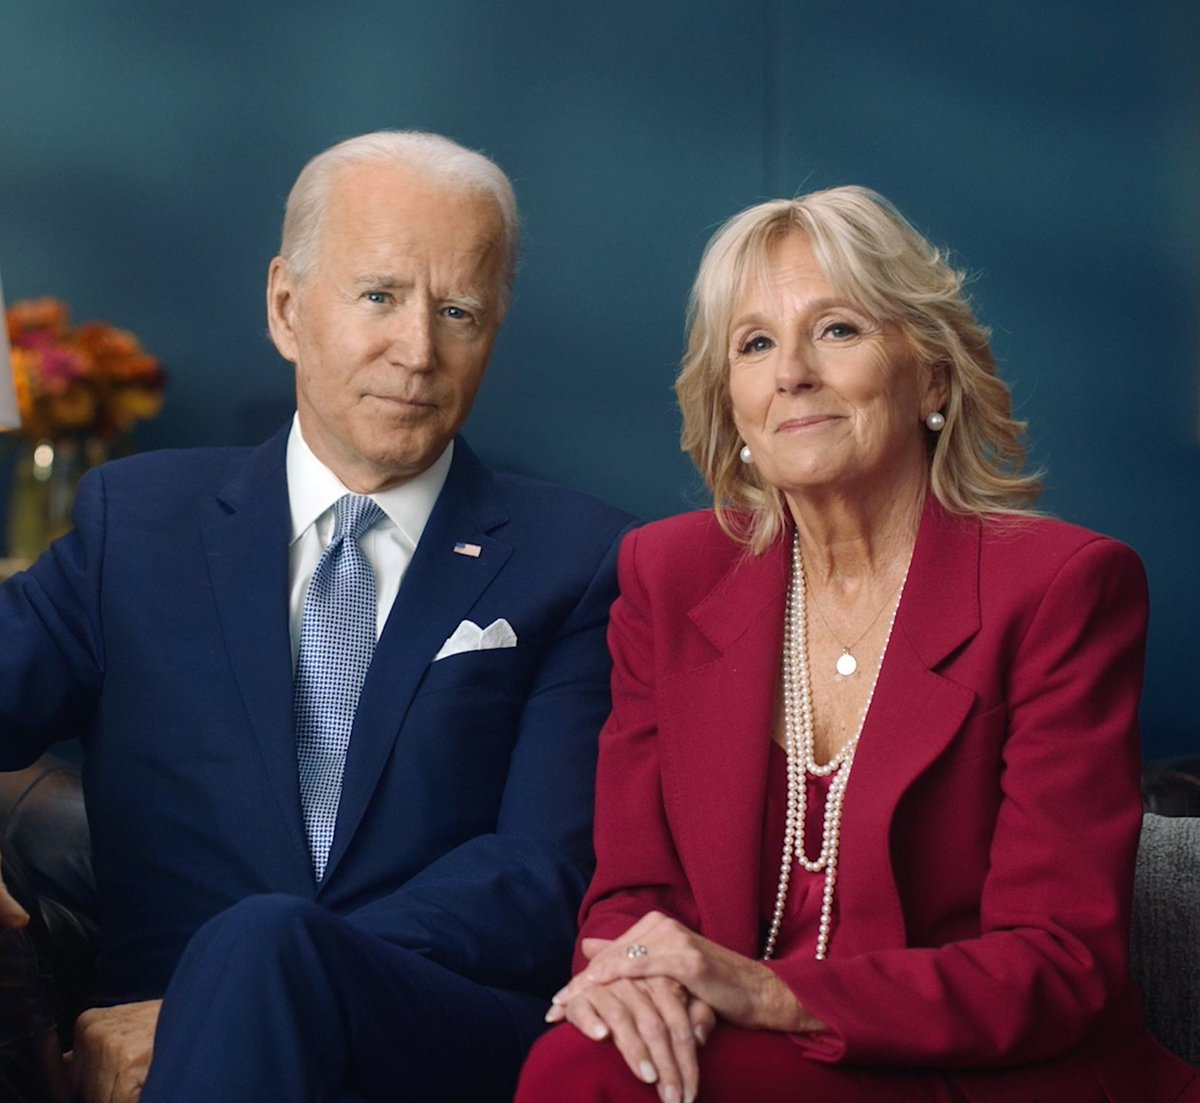 Thanksgiving has always been a special time for the Biden family. And while I know this isn't the way many of us hoped to spend the holiday, the small act of staying home is a gift to our fellow Americans.